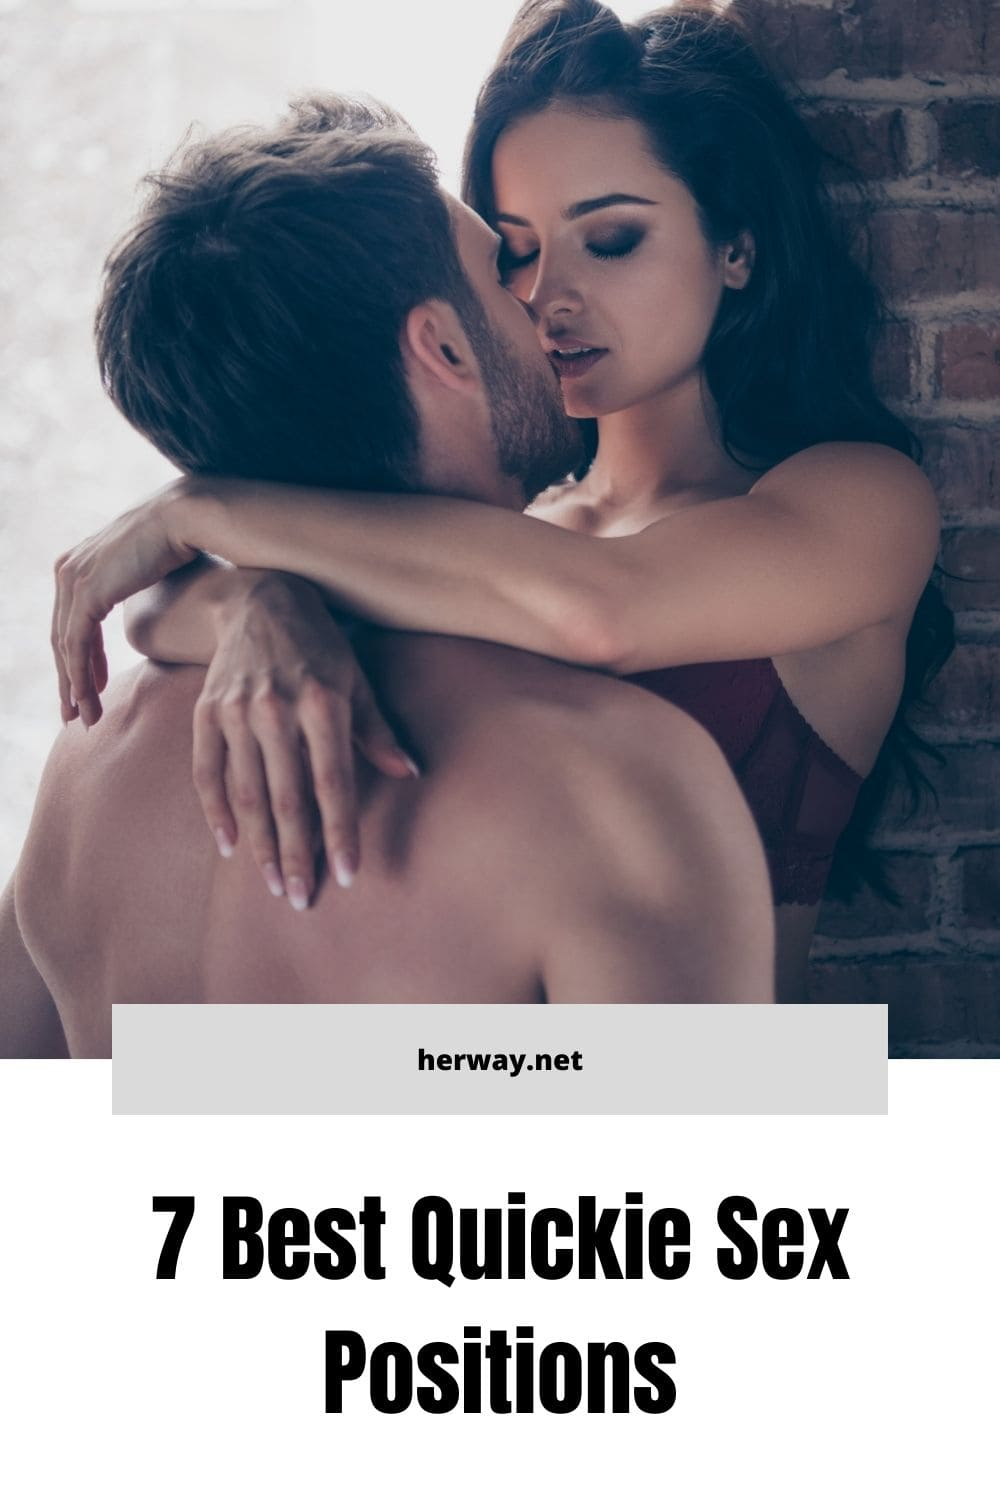 7 Best Quickie Sex Positions